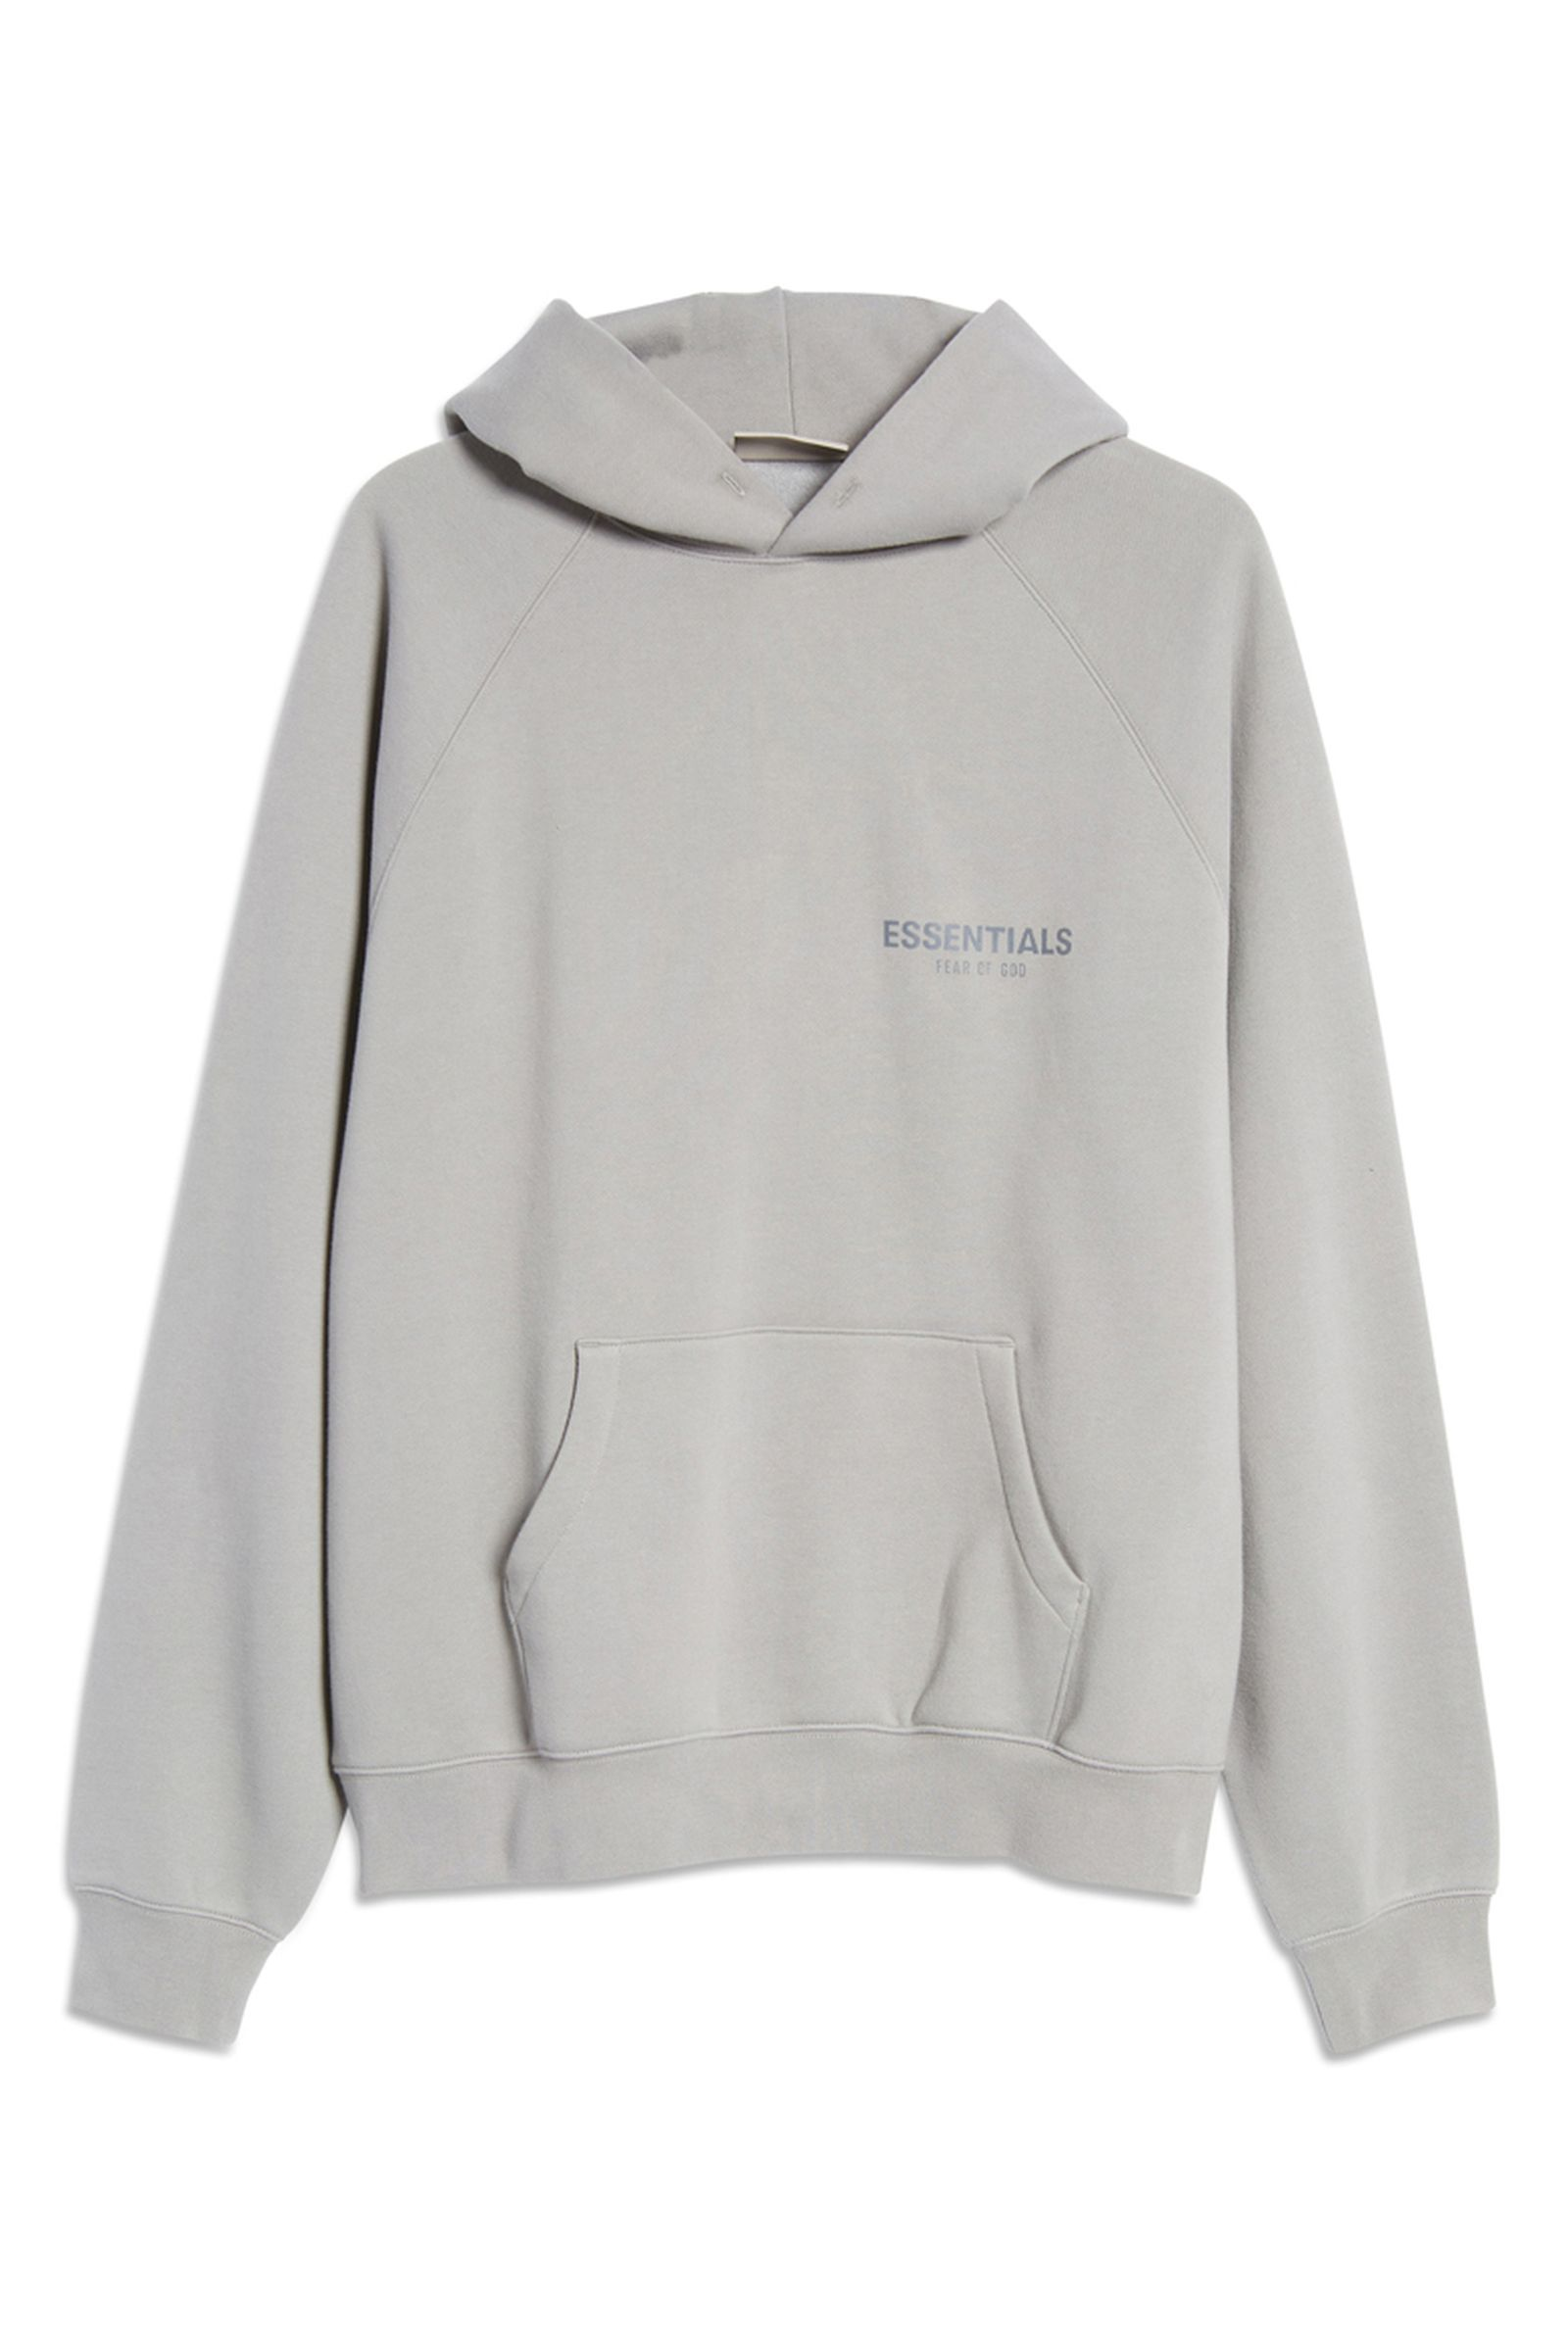 fear of god essentials nordstrom exclusive (10)